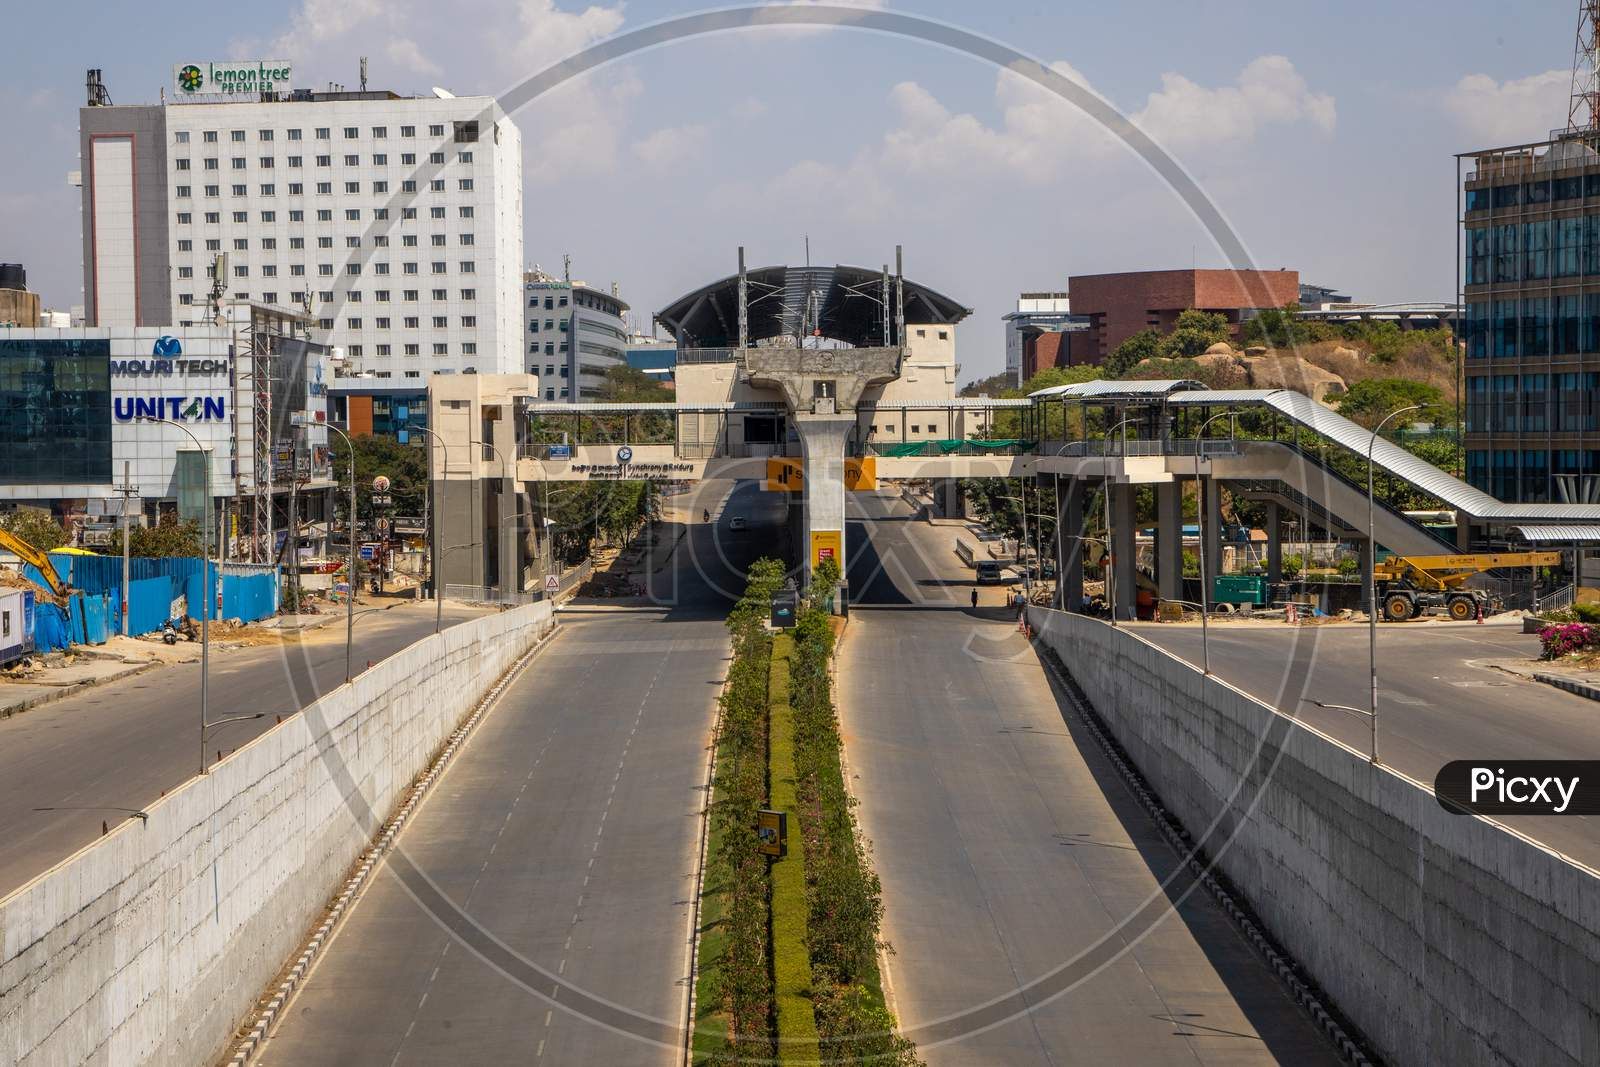 Janata Curfew, Deserted Roads At Raidurg Metro Station   In Hyderabad  As Indian Prime Minister Narendra Modi Called For A 14 Hour Janta  Curfew Or Self-Imposed  Quarantine To Break The  Highly Contagious  Covid 19 Or Corona Virus Spread